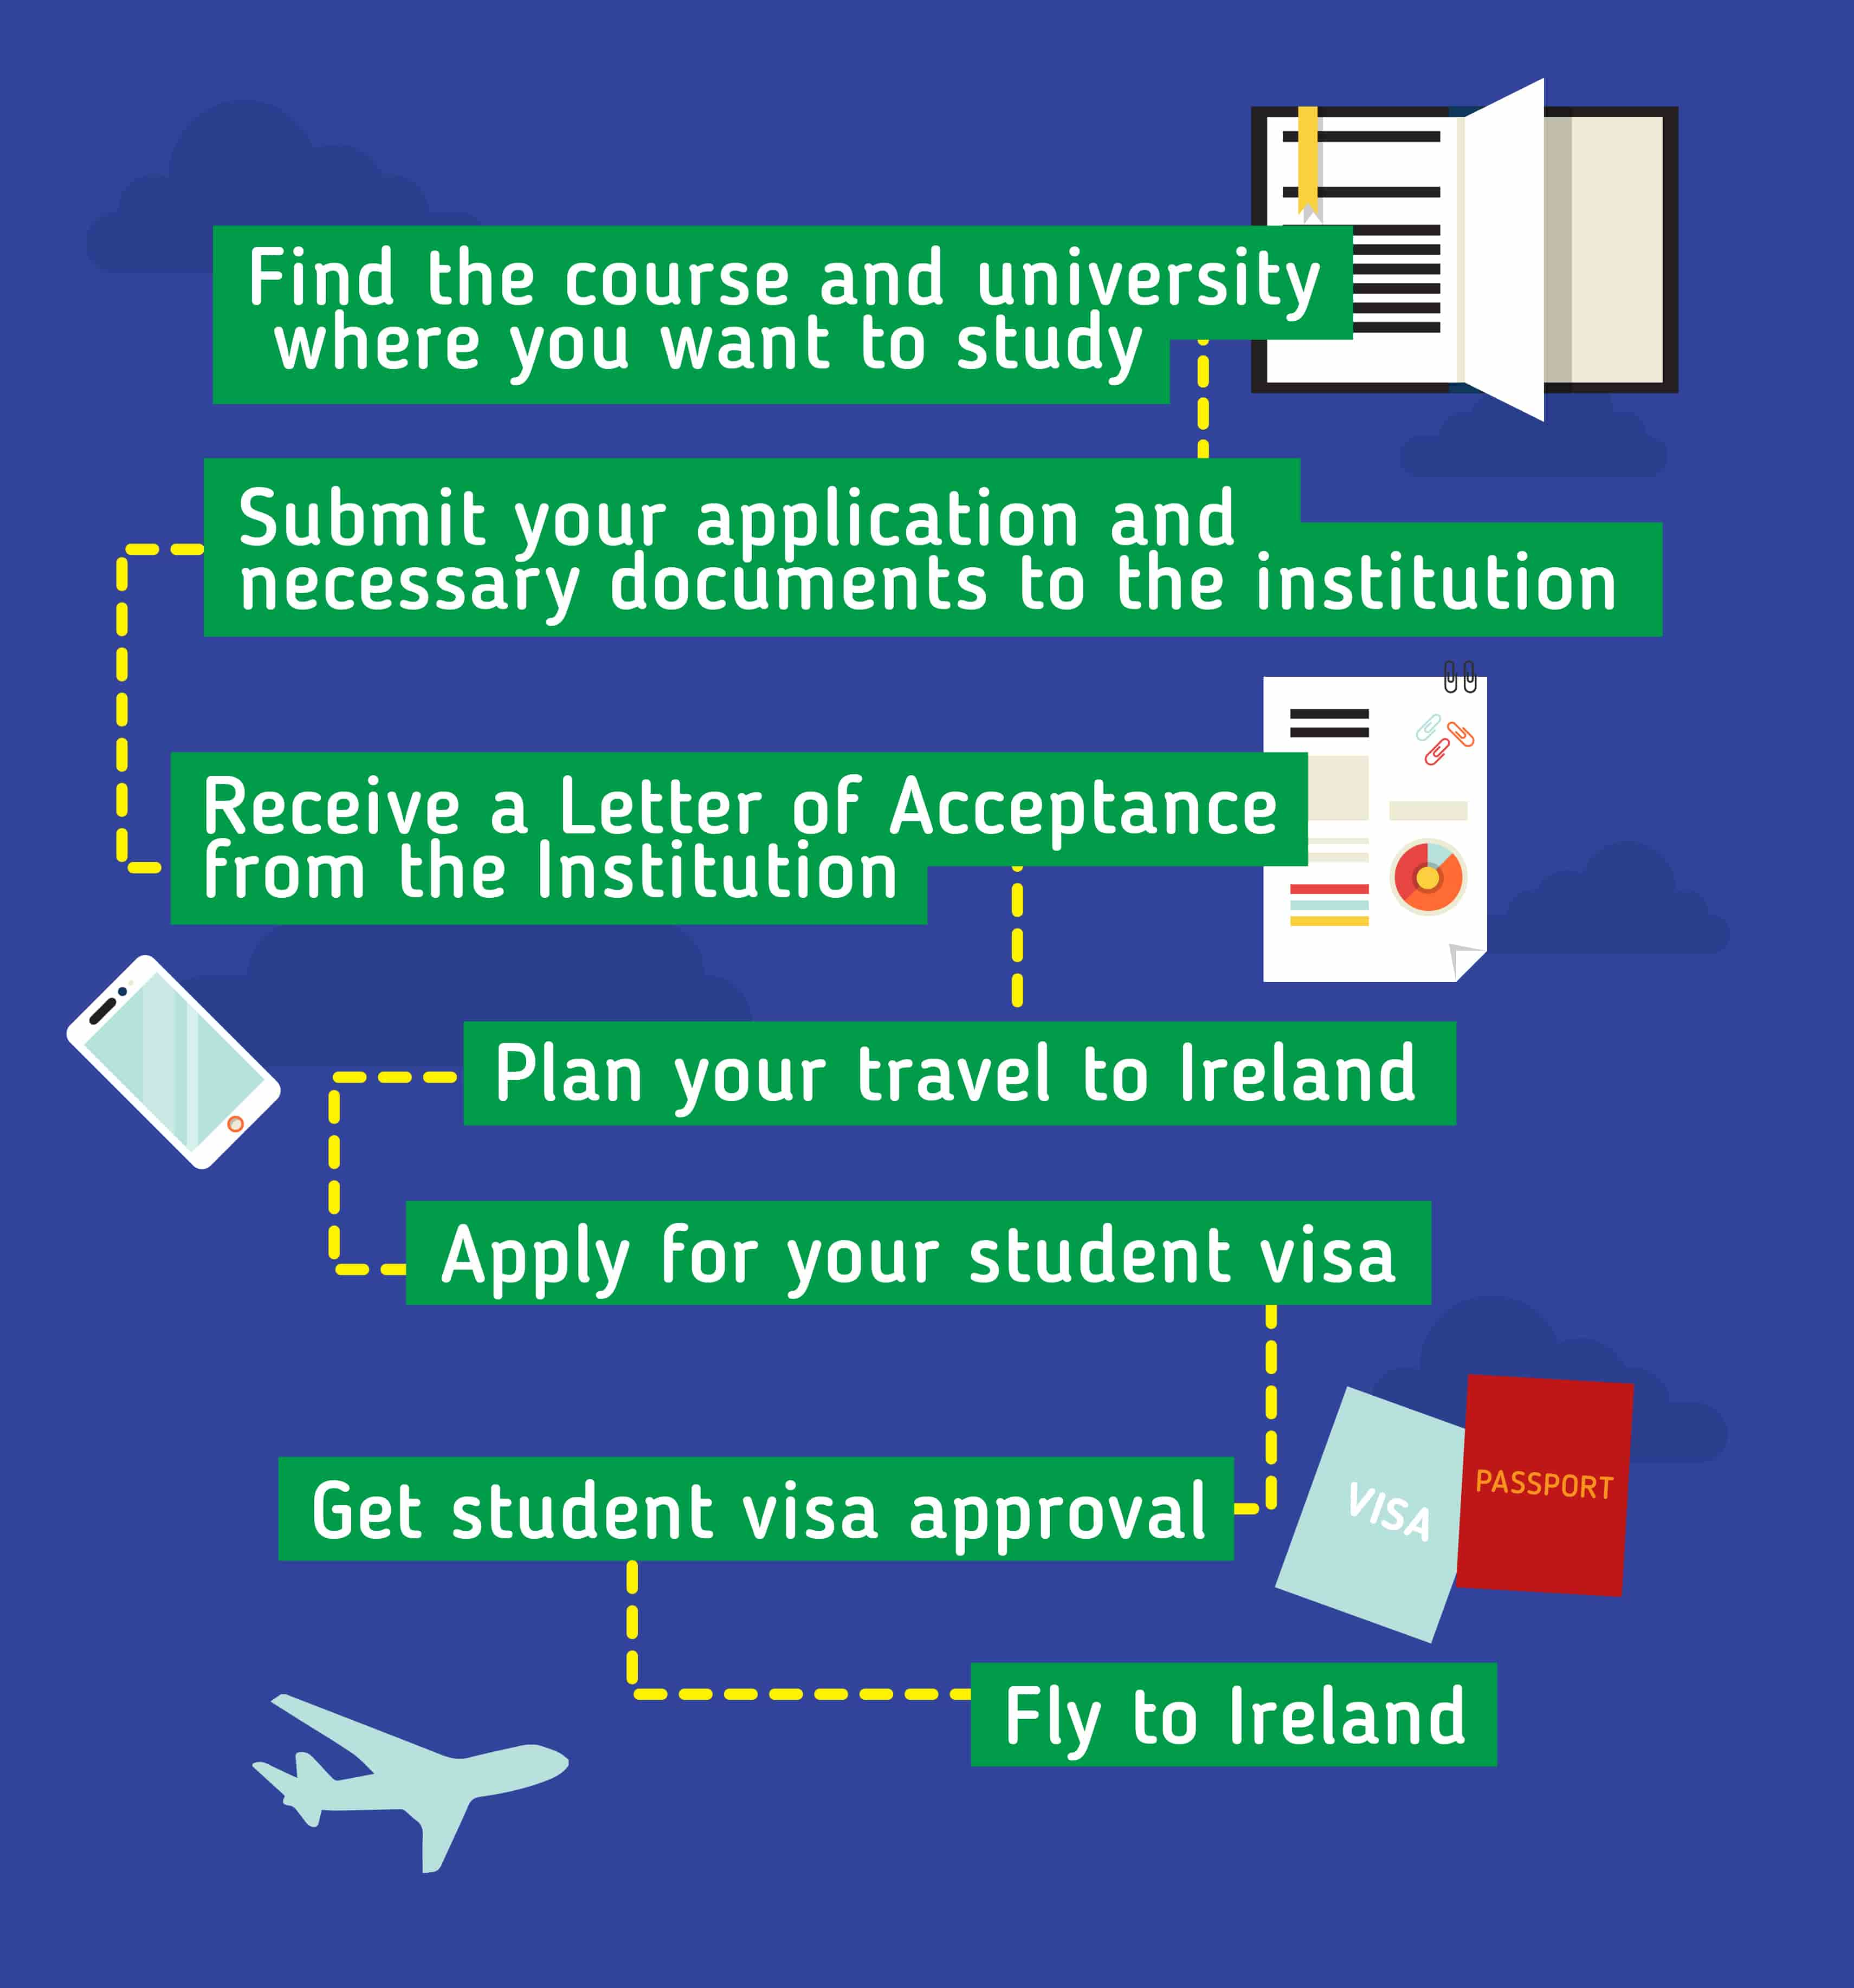 Applying to Study in Ireland: Find the course and university where you want to study - Submit your application and necessary documents to the institution - Receive a letter of acceptance rom the institution - Plan your travel to Ireland - Apply for your student visa